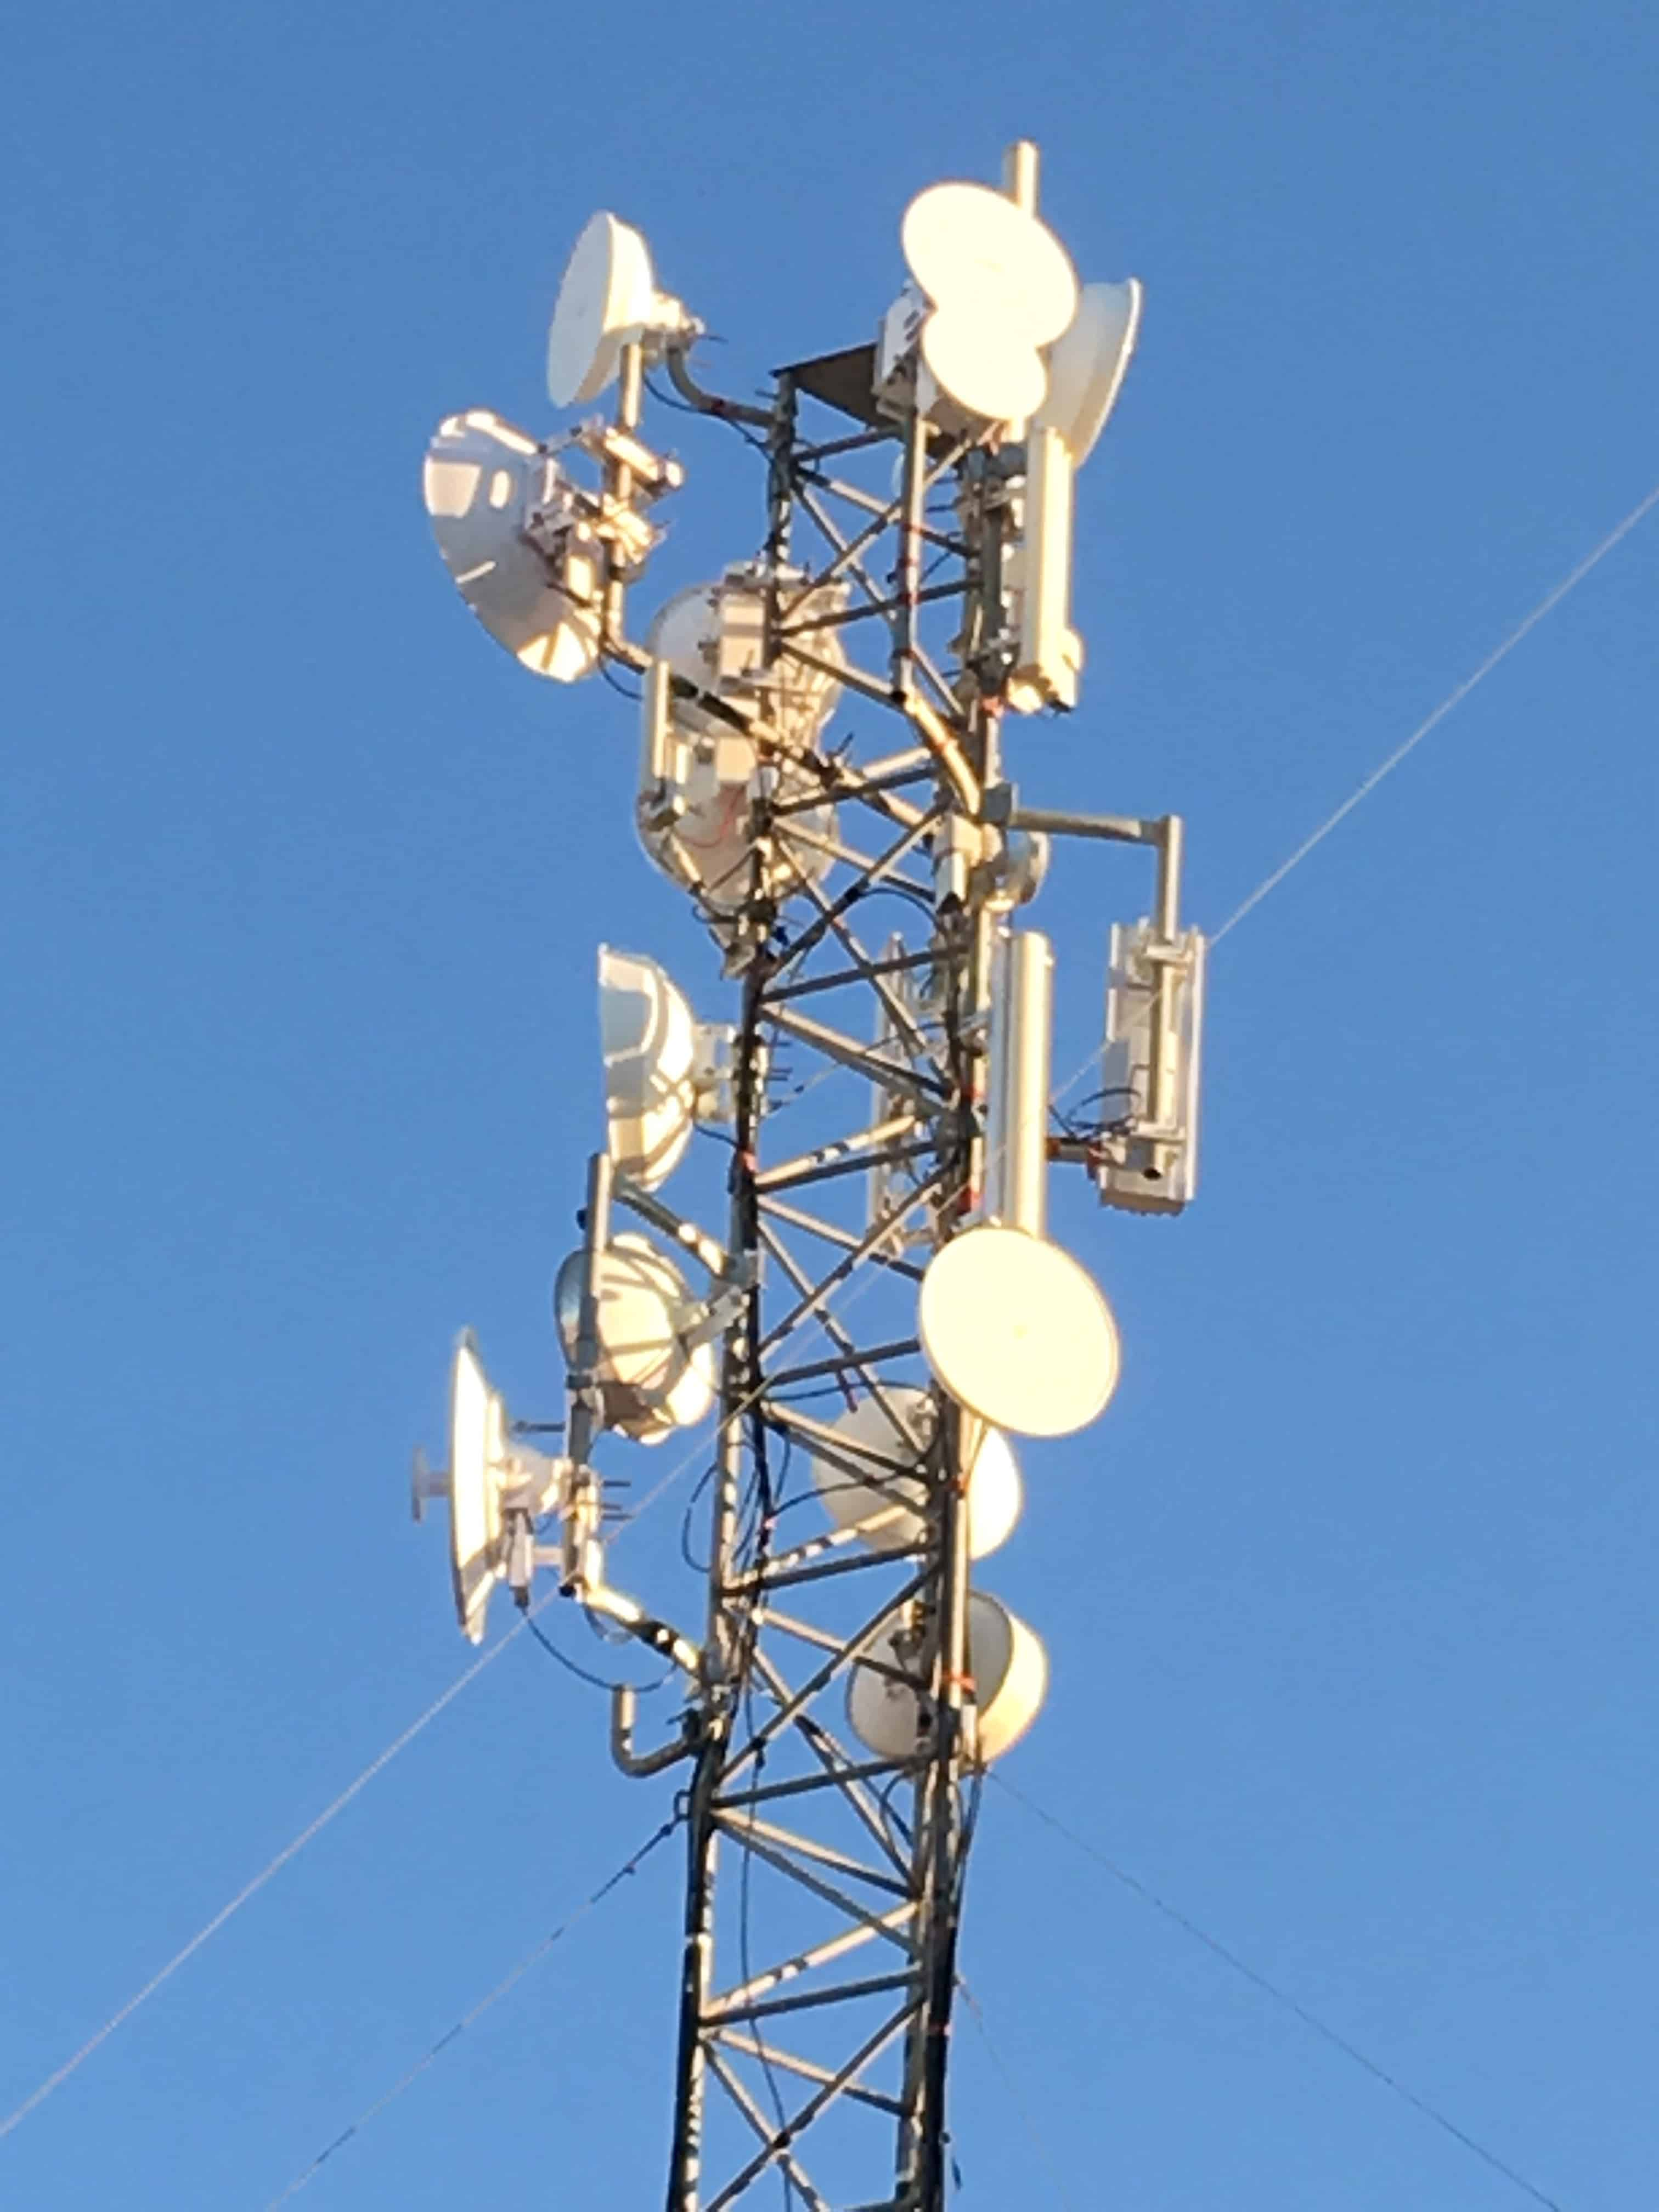 Wireless internet options for rural areas